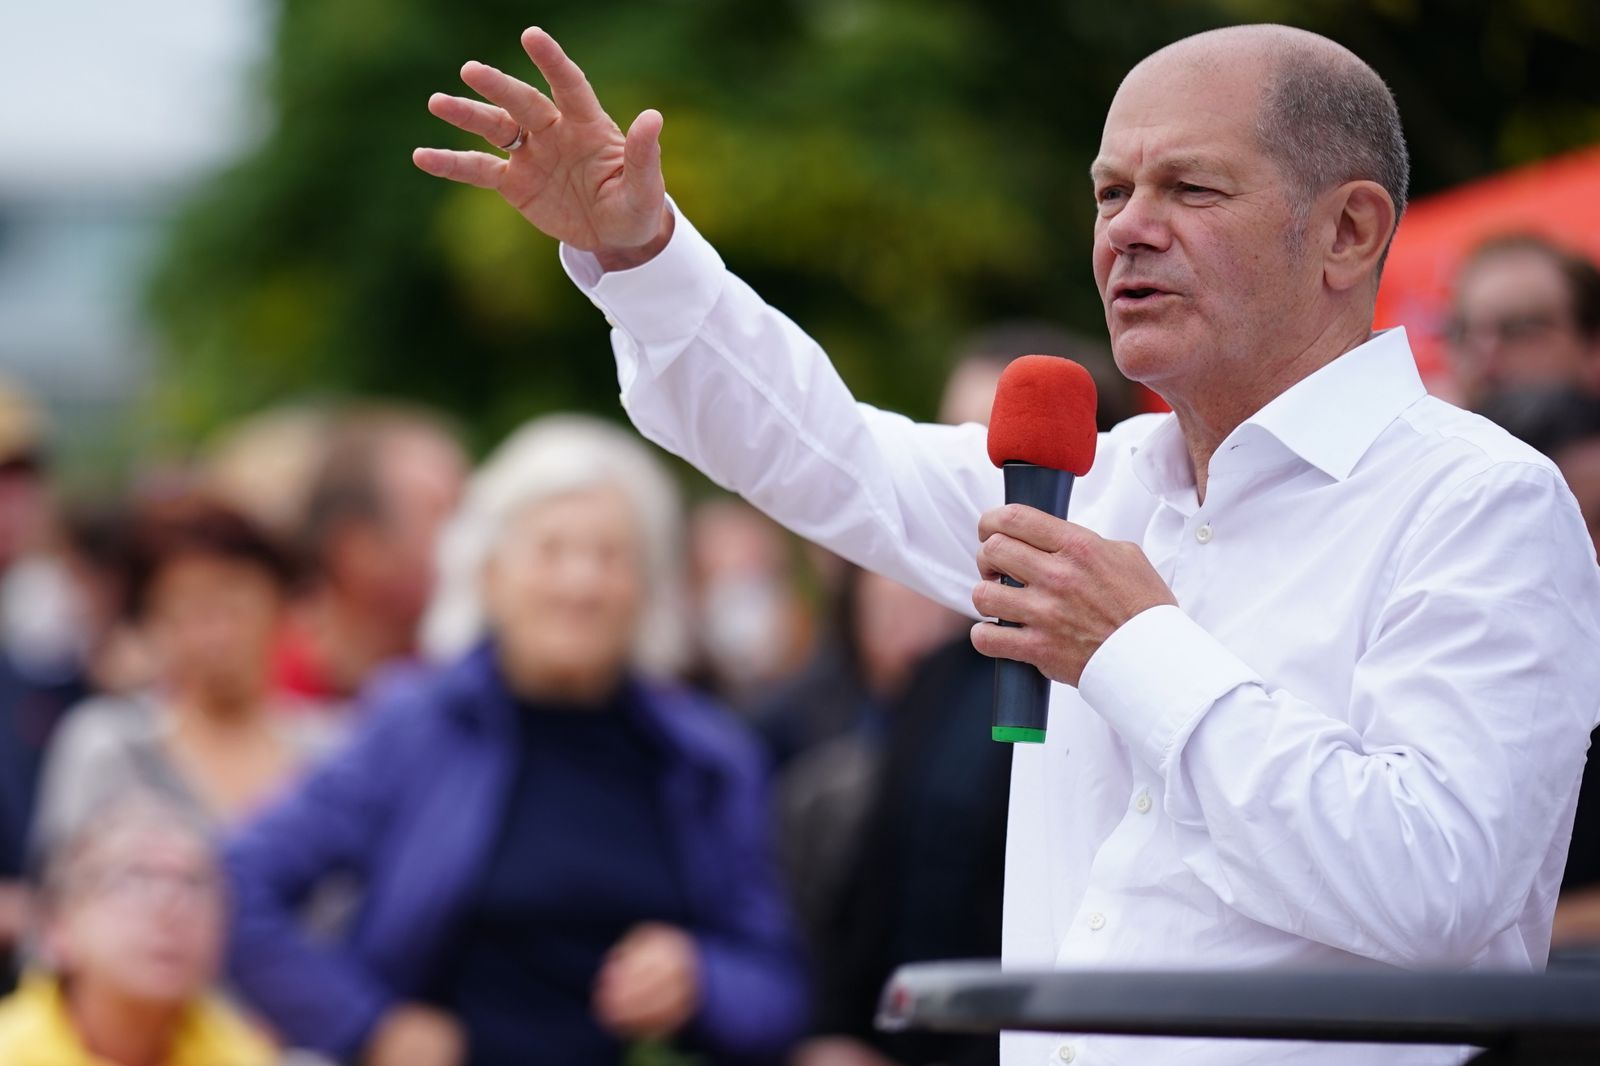 Brandenburg regional SPD campaign closing event with top candidate Olaf Scholz